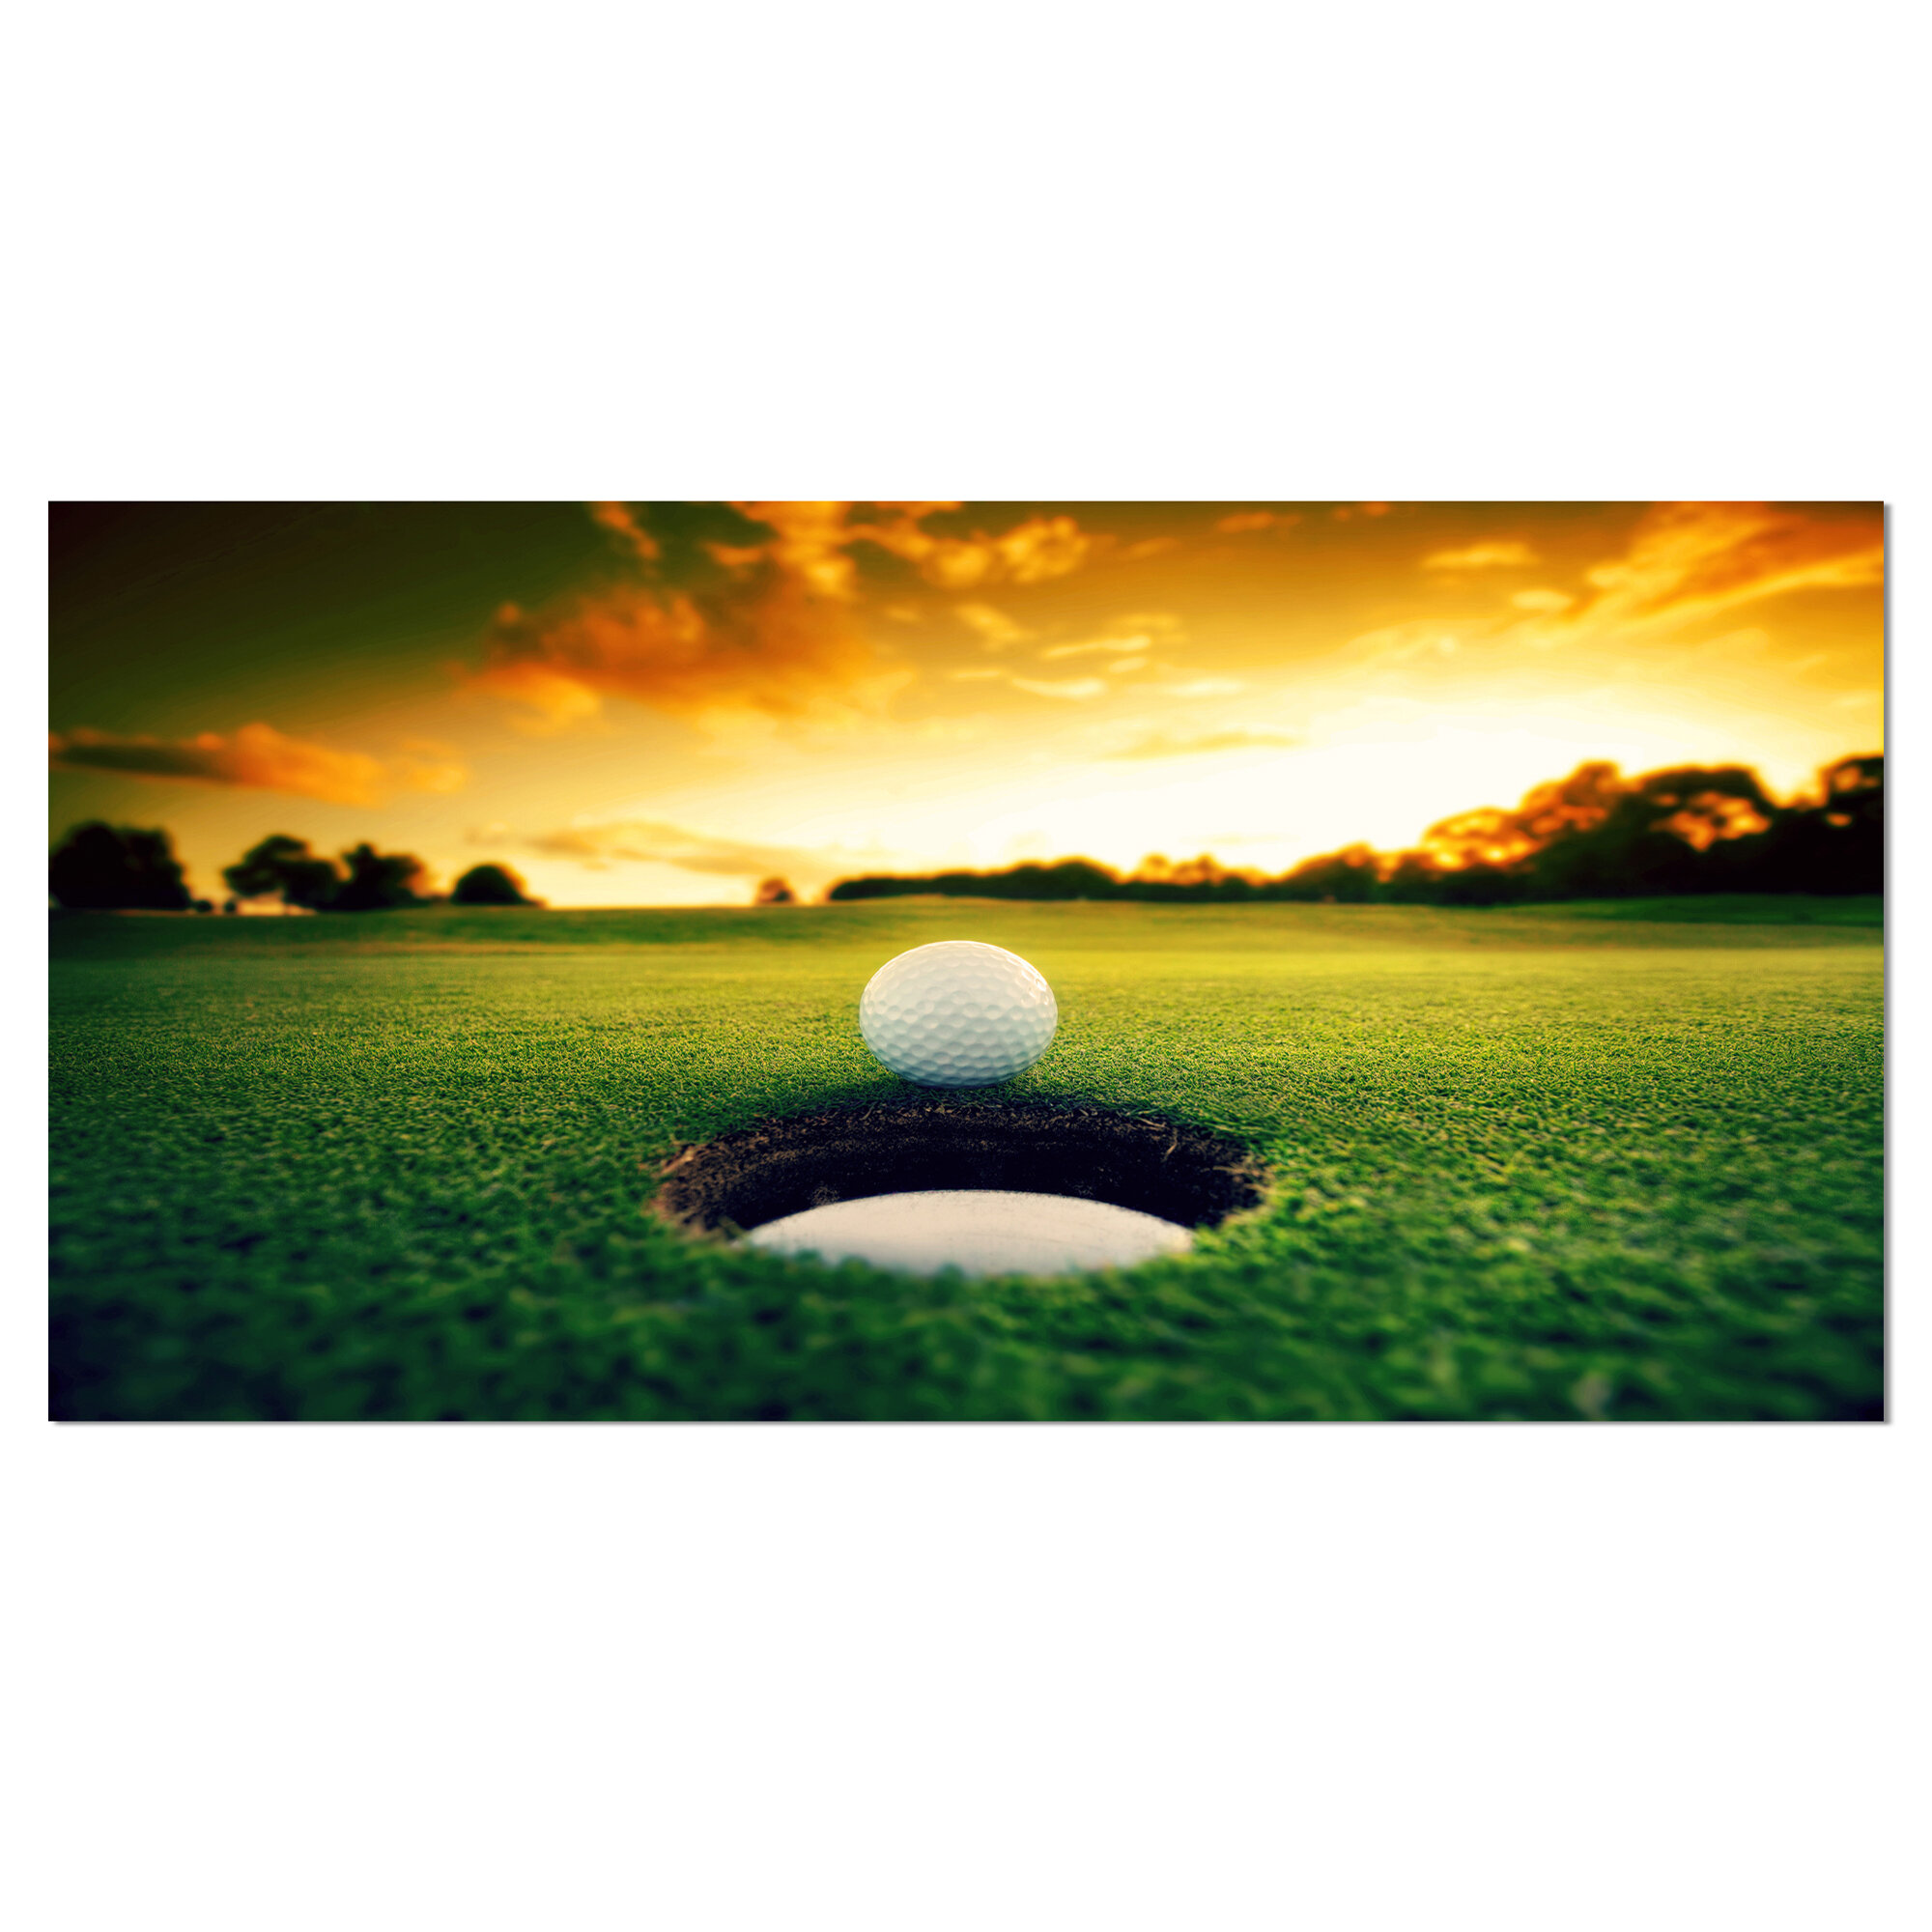 DesignArt \'Golf Ball Near Hole\' Photographic Print on Wrapped Canvas ...